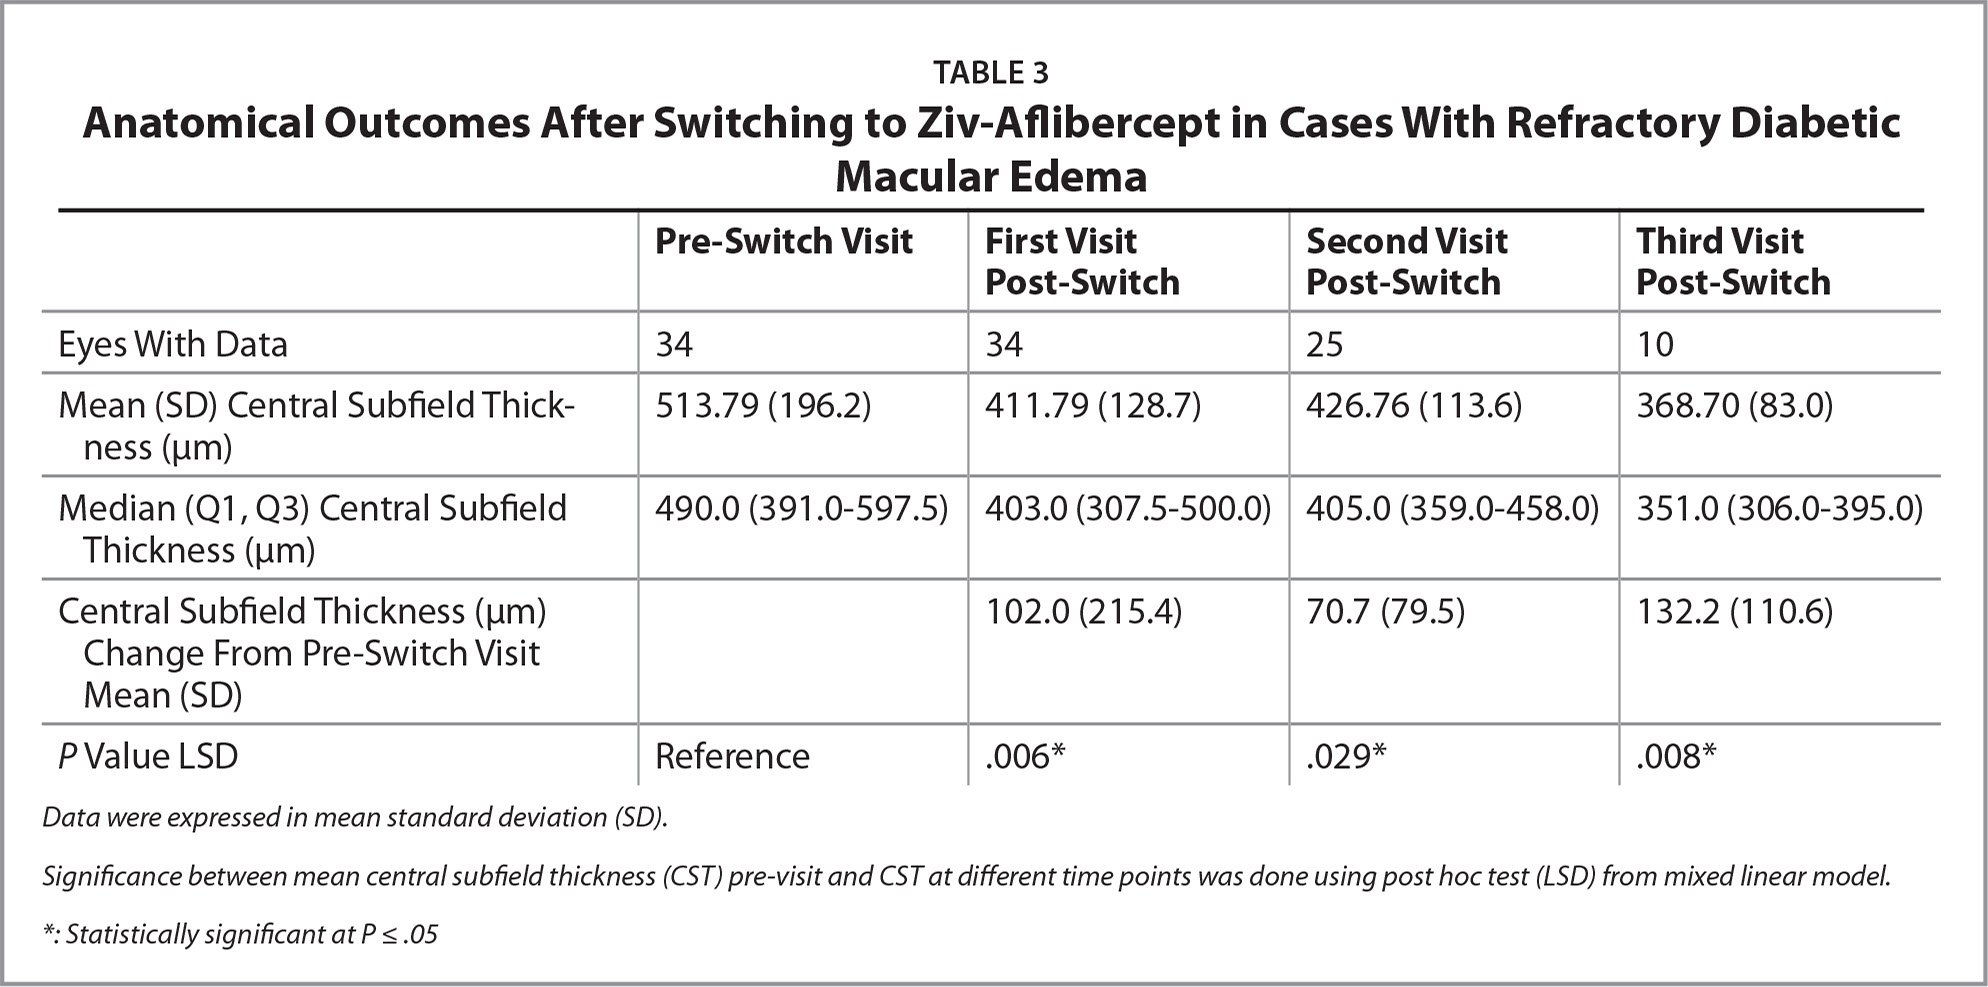 Anatomical Outcomes After Switching to Ziv-Aflibercept in Cases With Refractory Diabetic Macular Edema